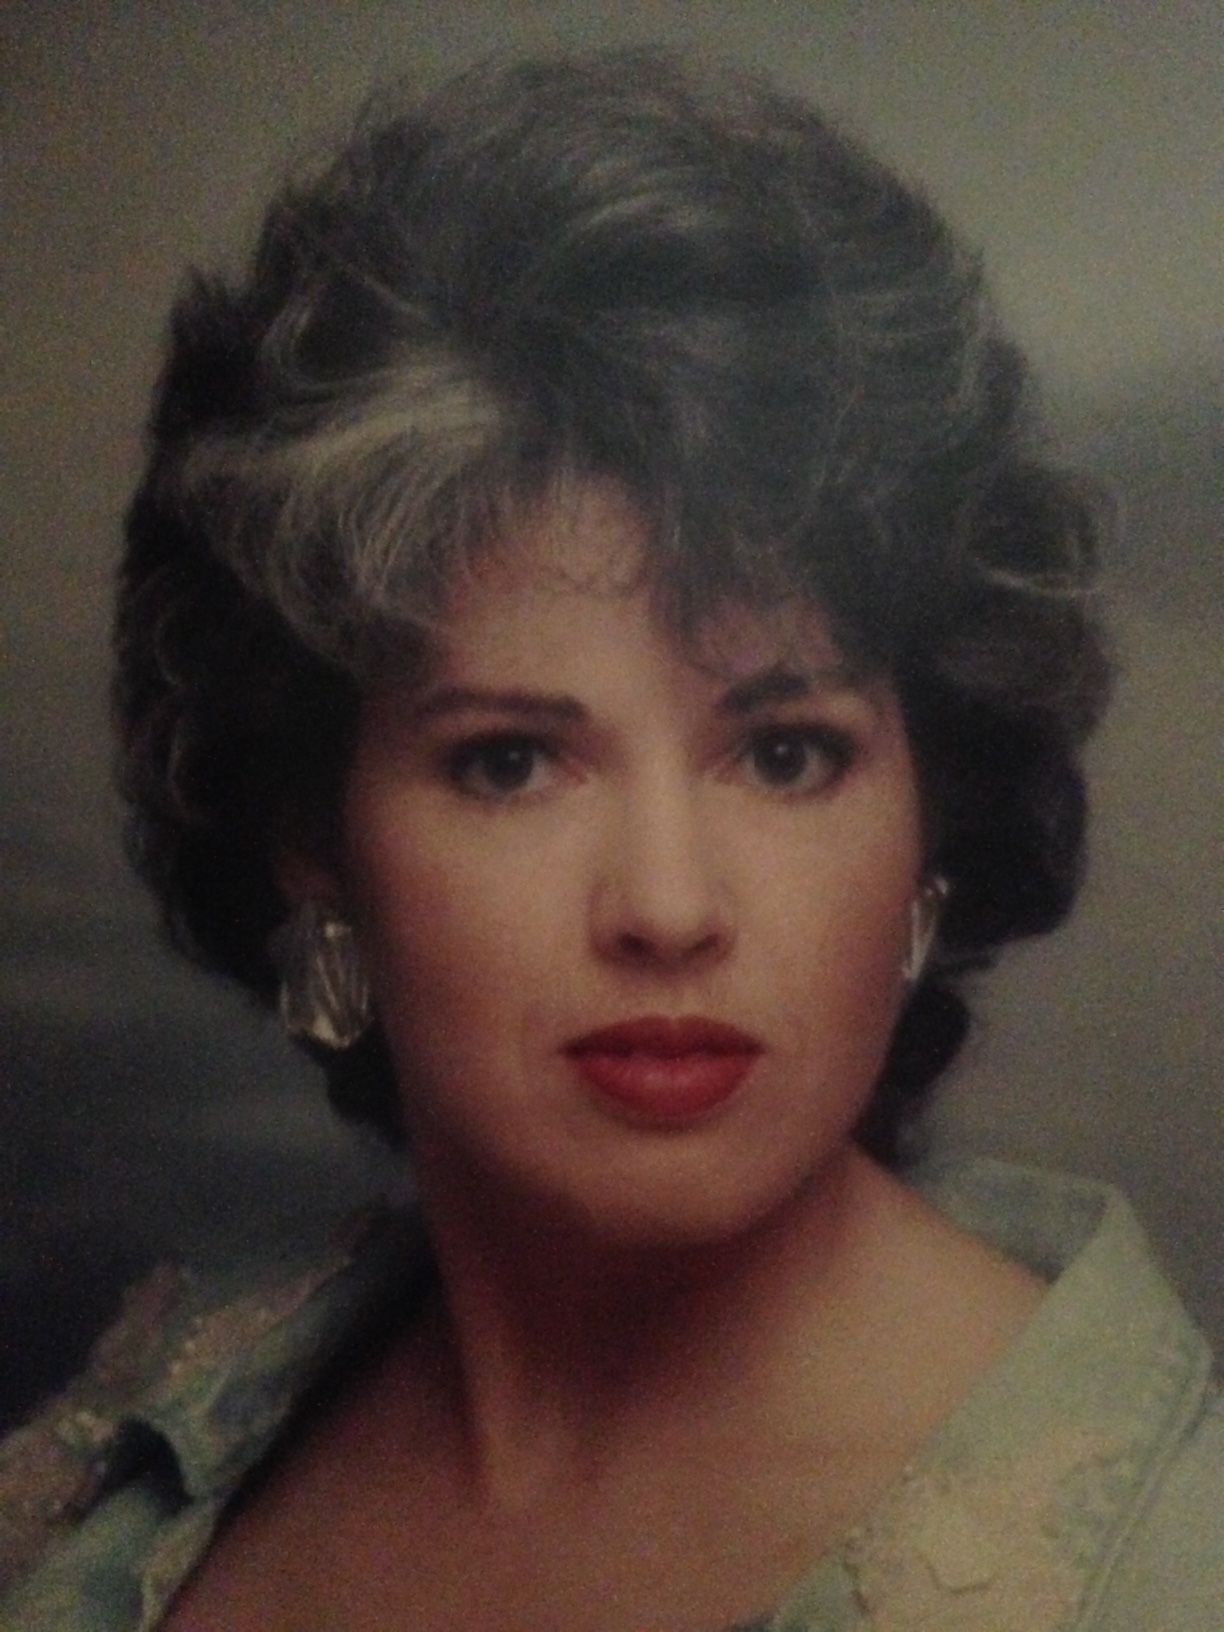 retro portrait of salt and pepper haired woman